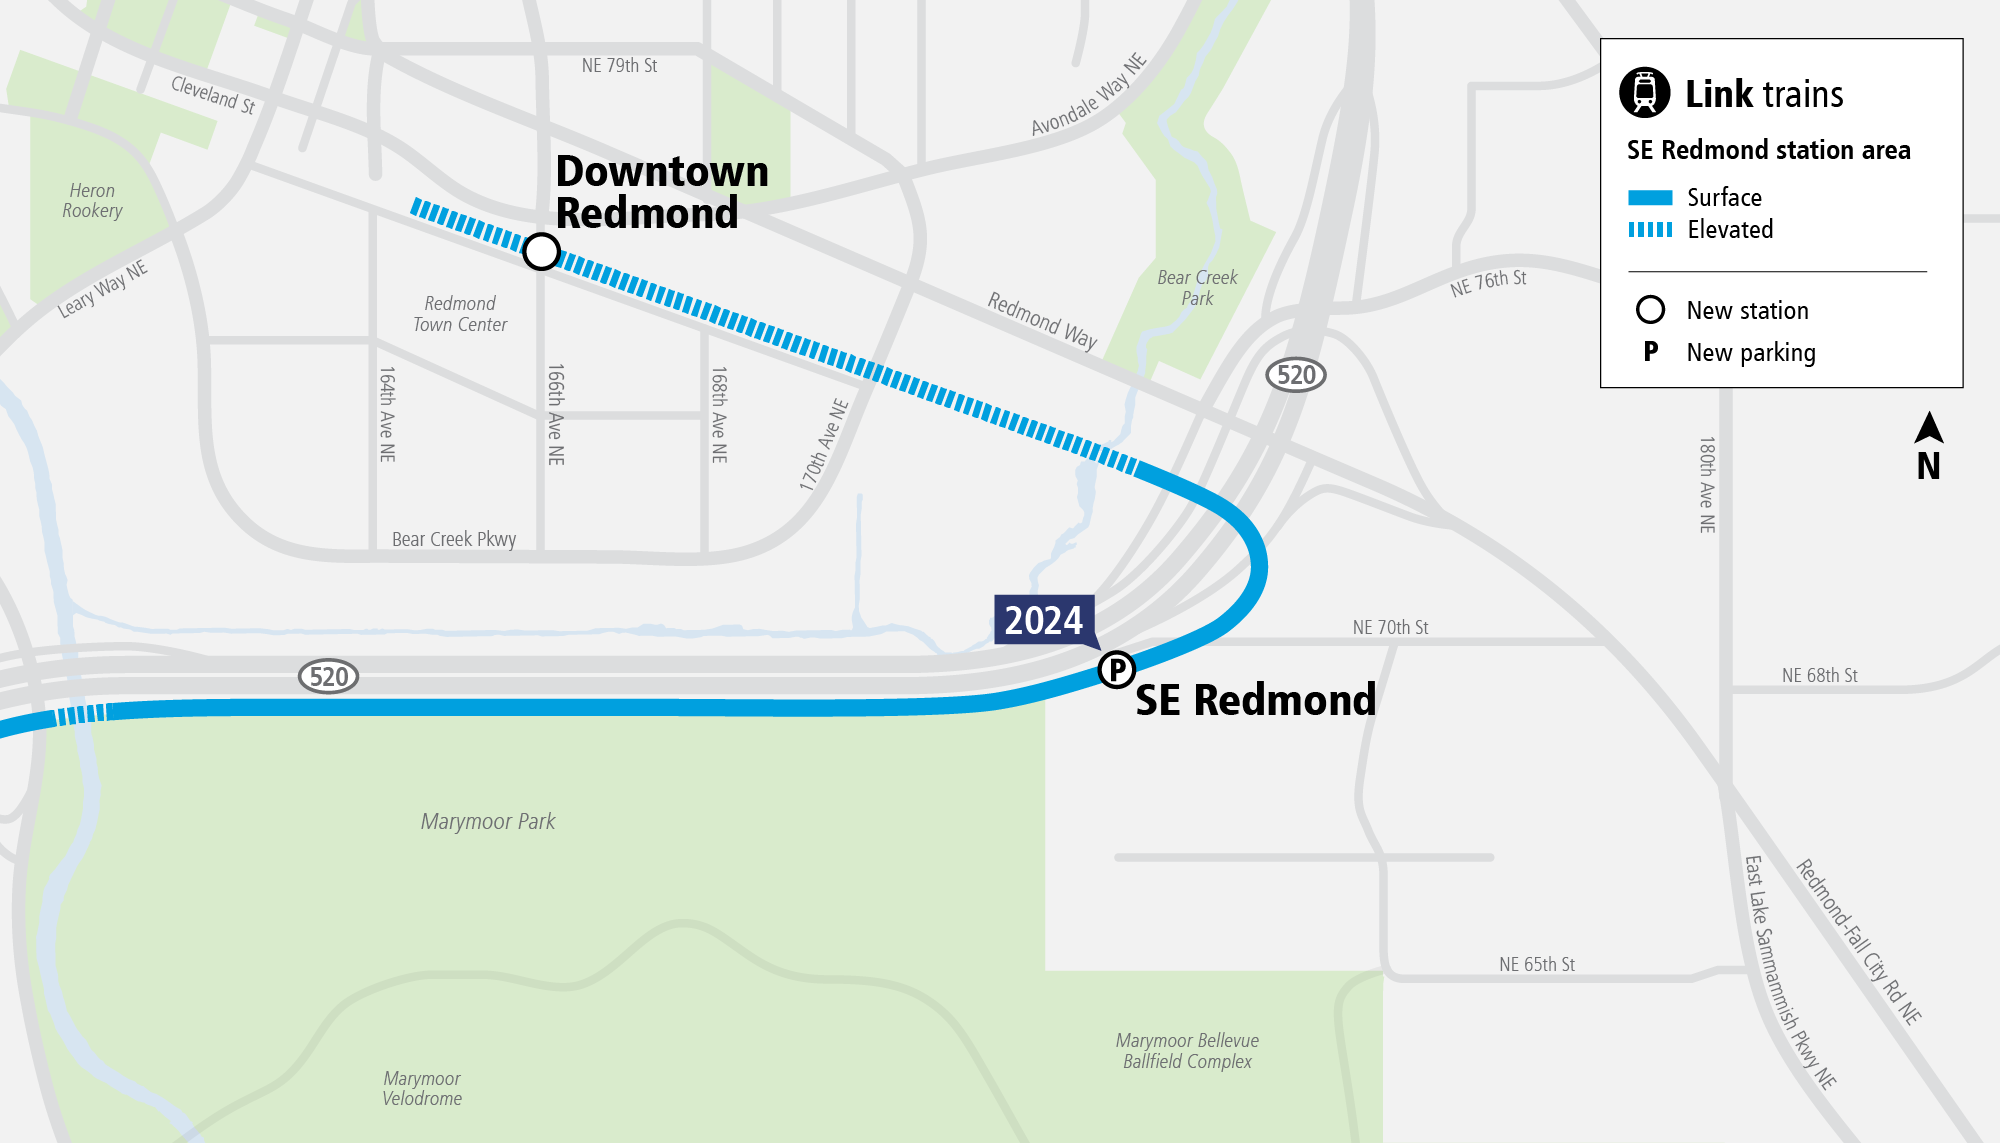 System Expansion web map for Southeast Redmond Station